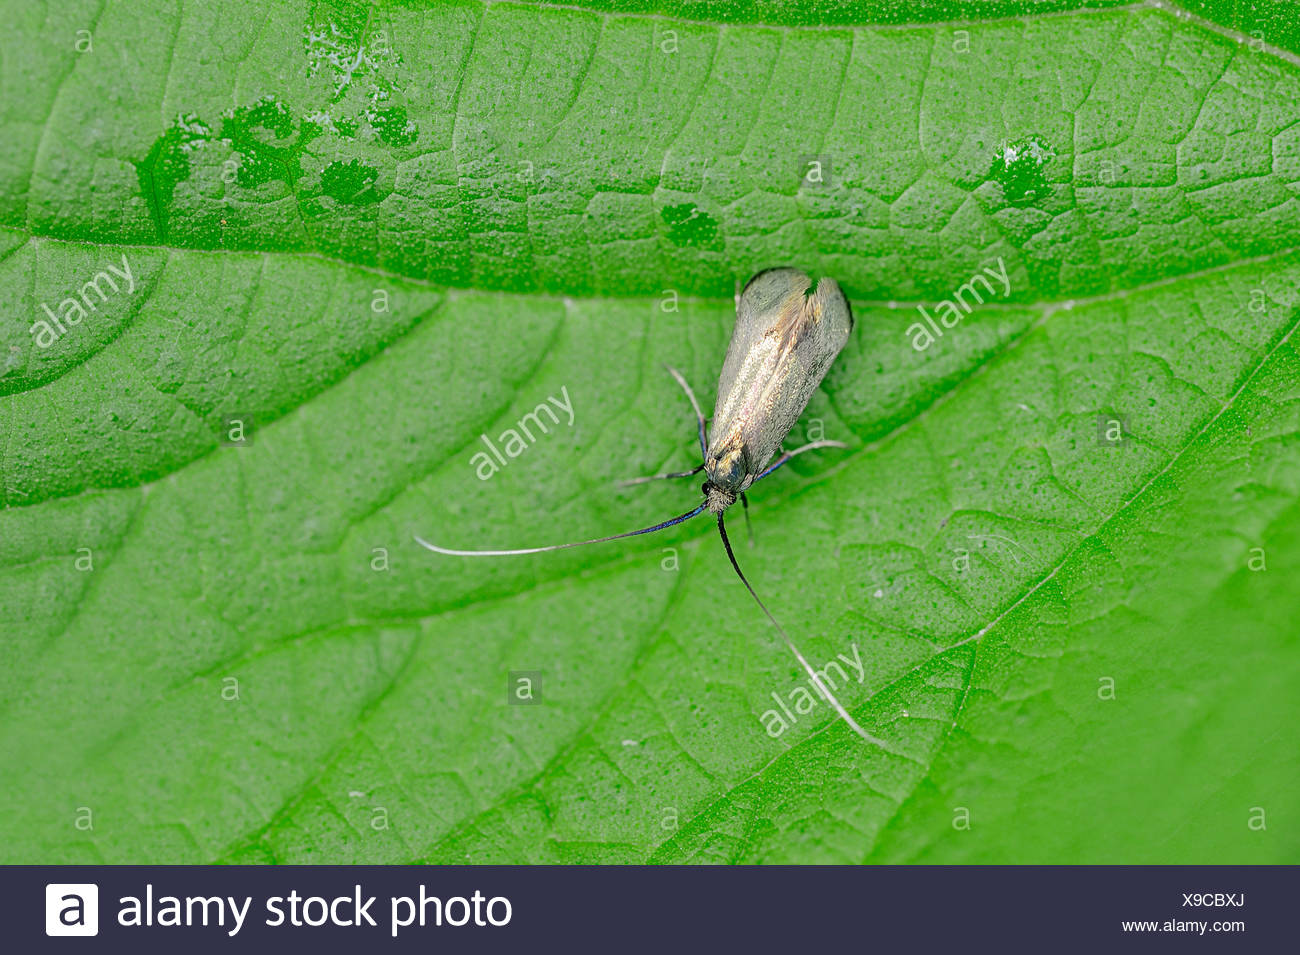 Green Longhorn (Adela reaumurella), female, North Rhine-Westphalia, Germany - Stock Image